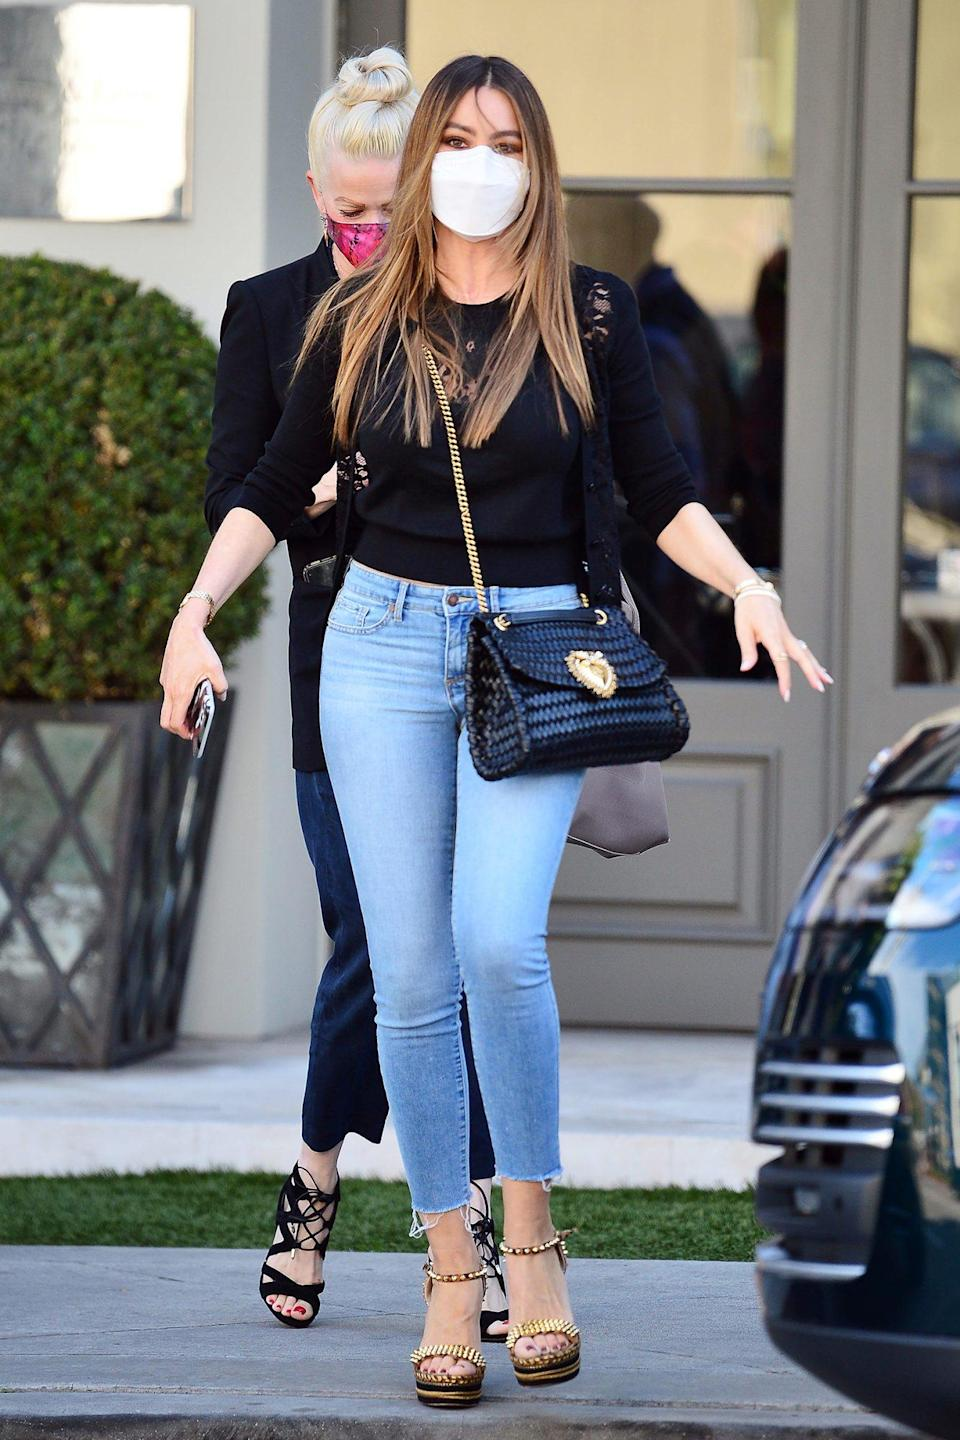 <p>Sofia Vergara keeps things casual in jeans and a lace top to meet up with a friend in L.A. on Wednesday. </p>